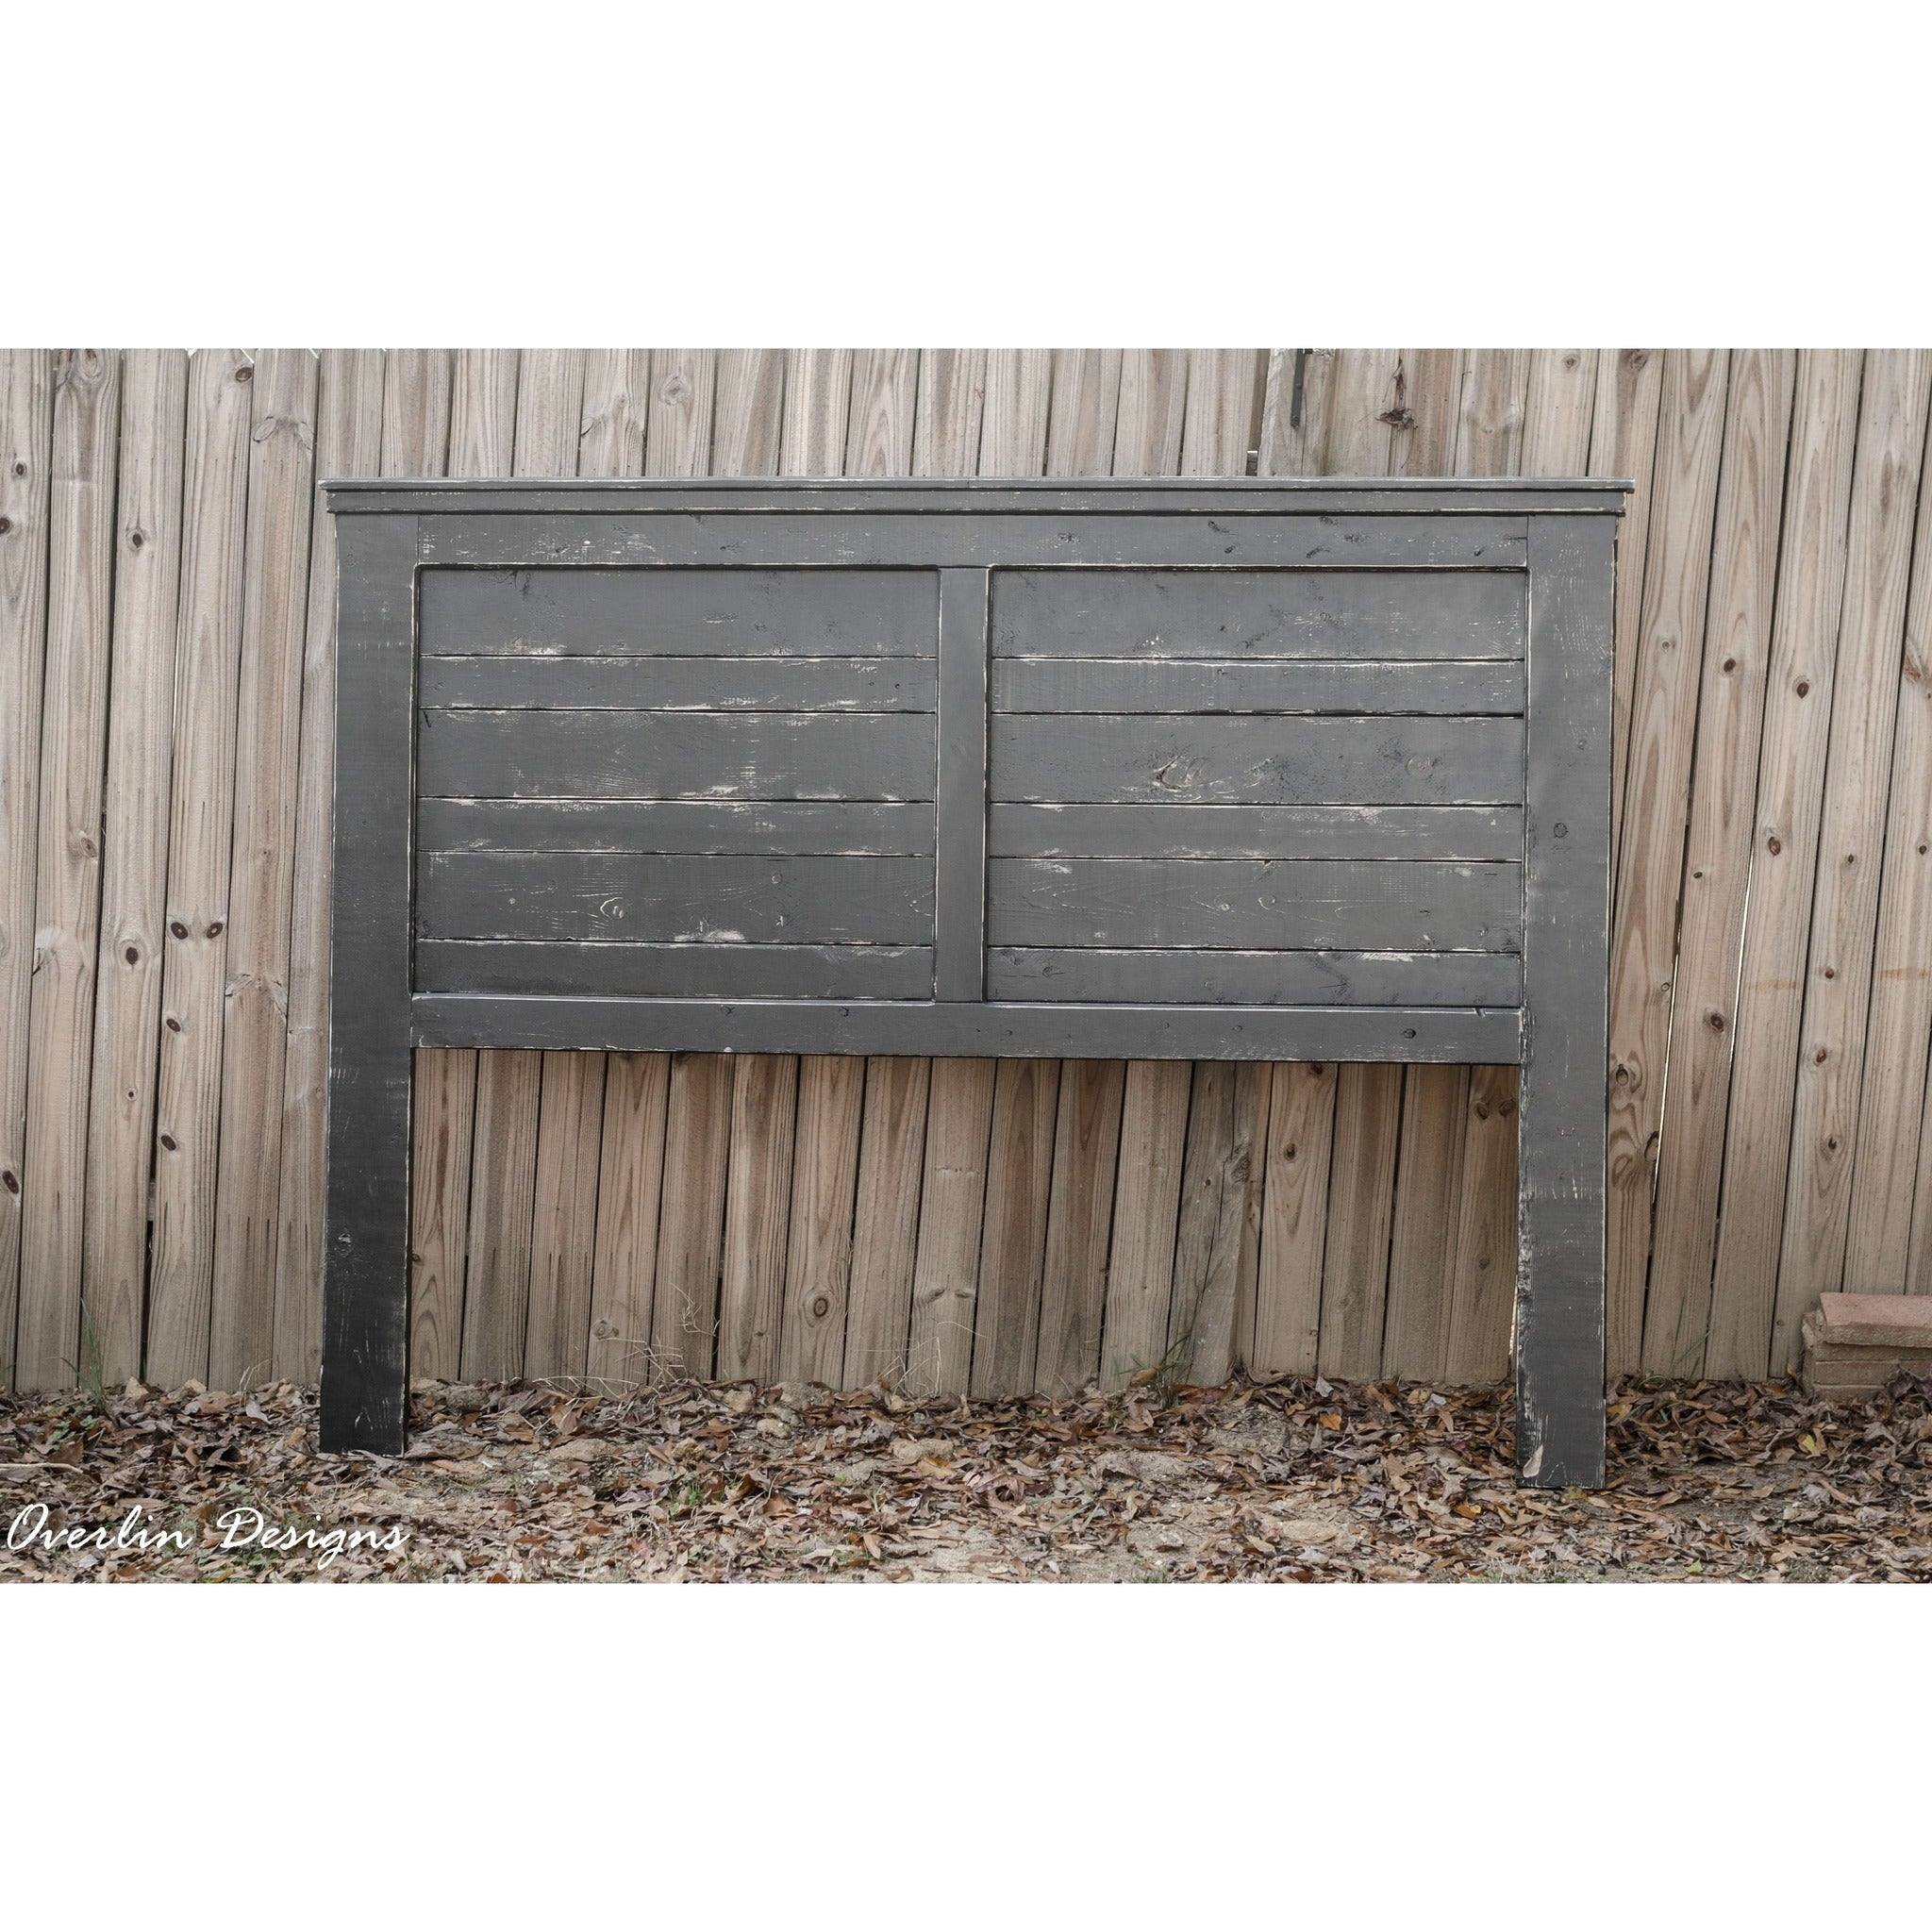 Handcrafted Farmhouse Headboards Made In Charlotte Nc Order Today Overlin Designs